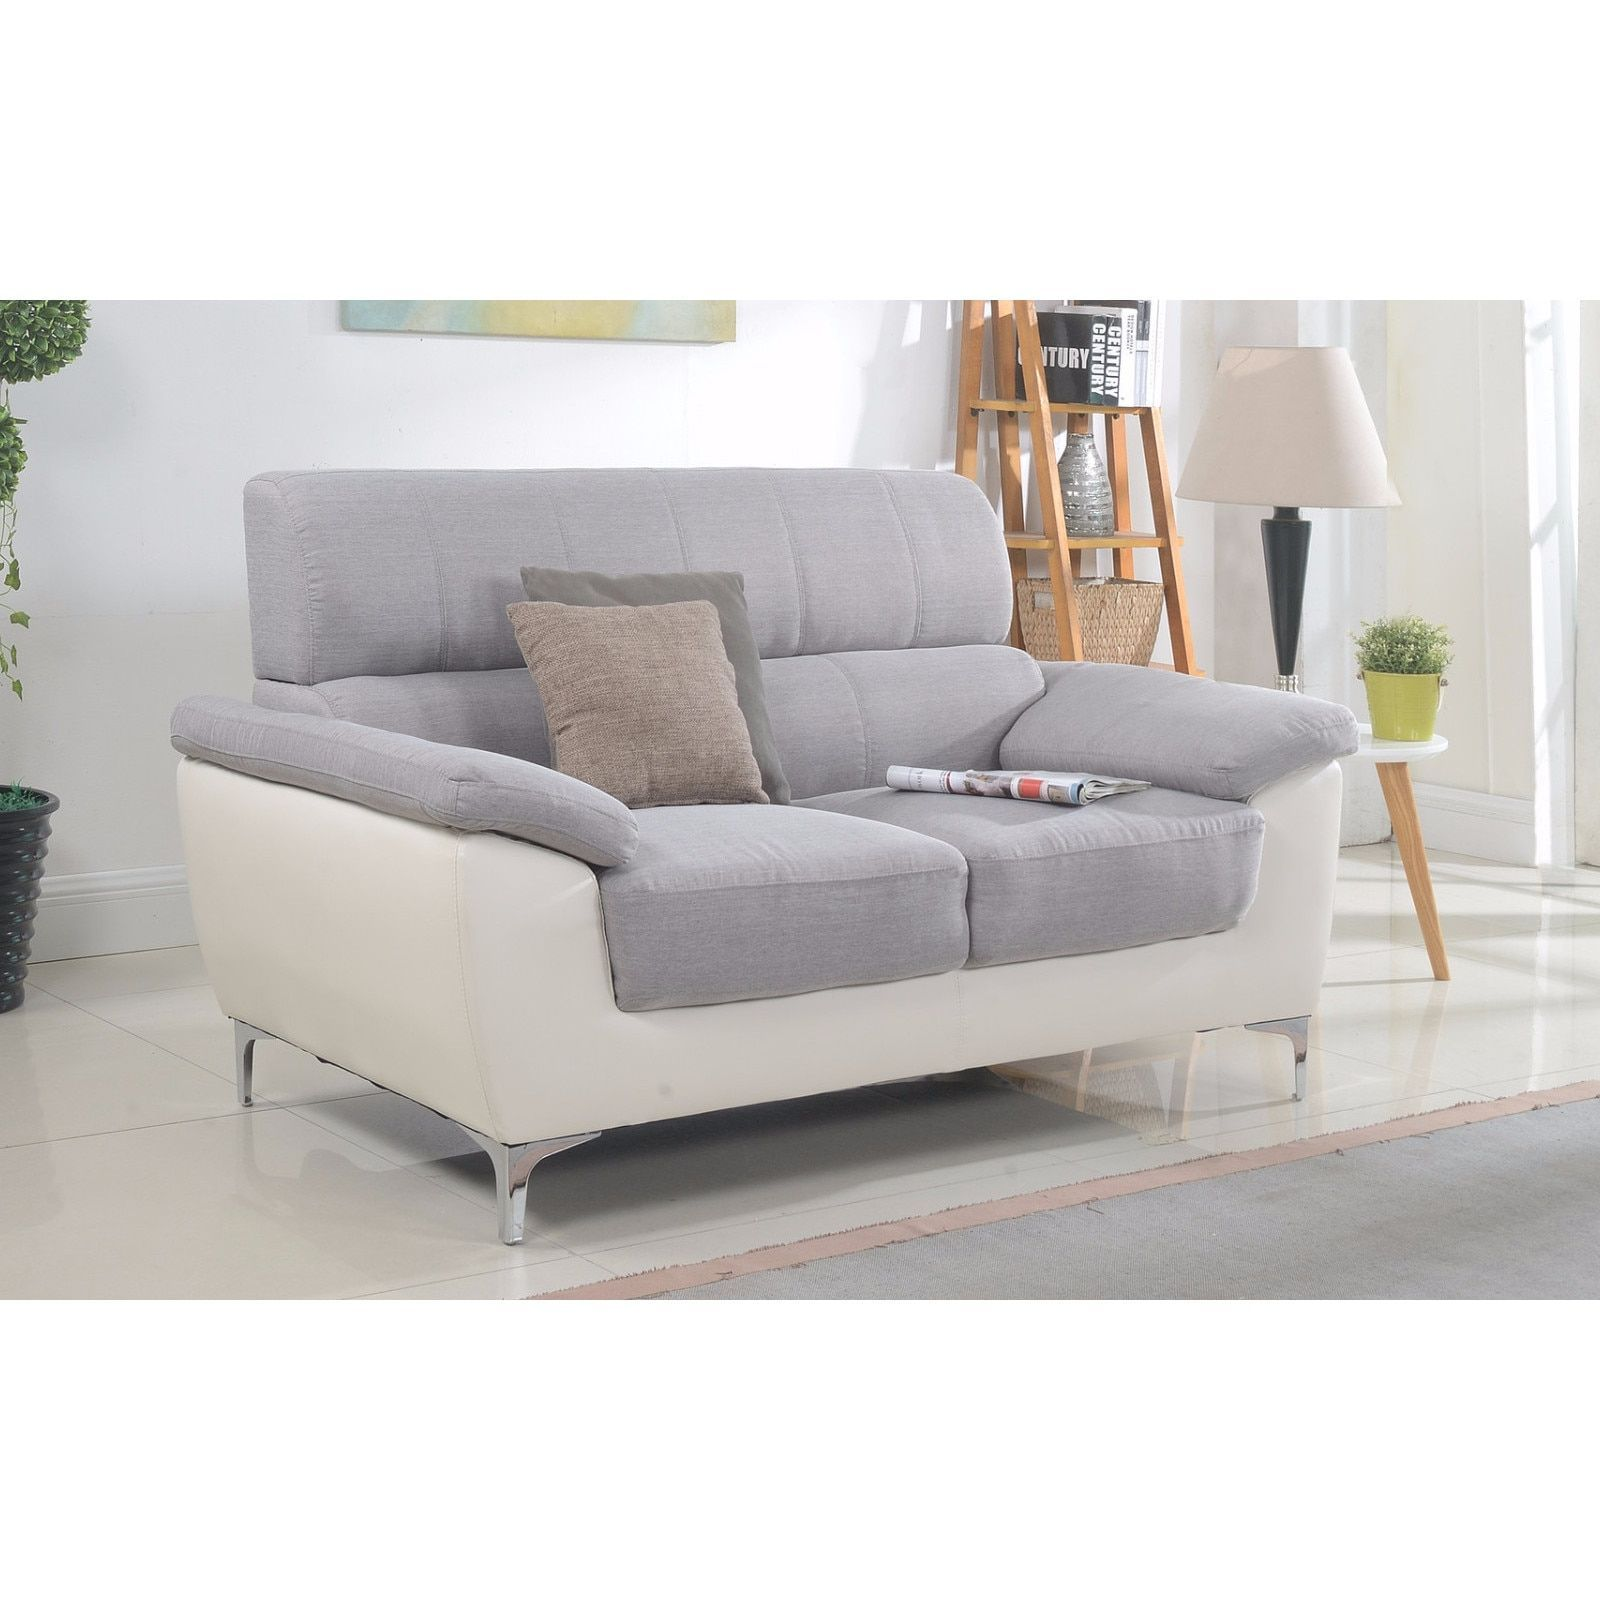 Madison modern two tone fabric and bonded leather living room loveseat light grey loveseat